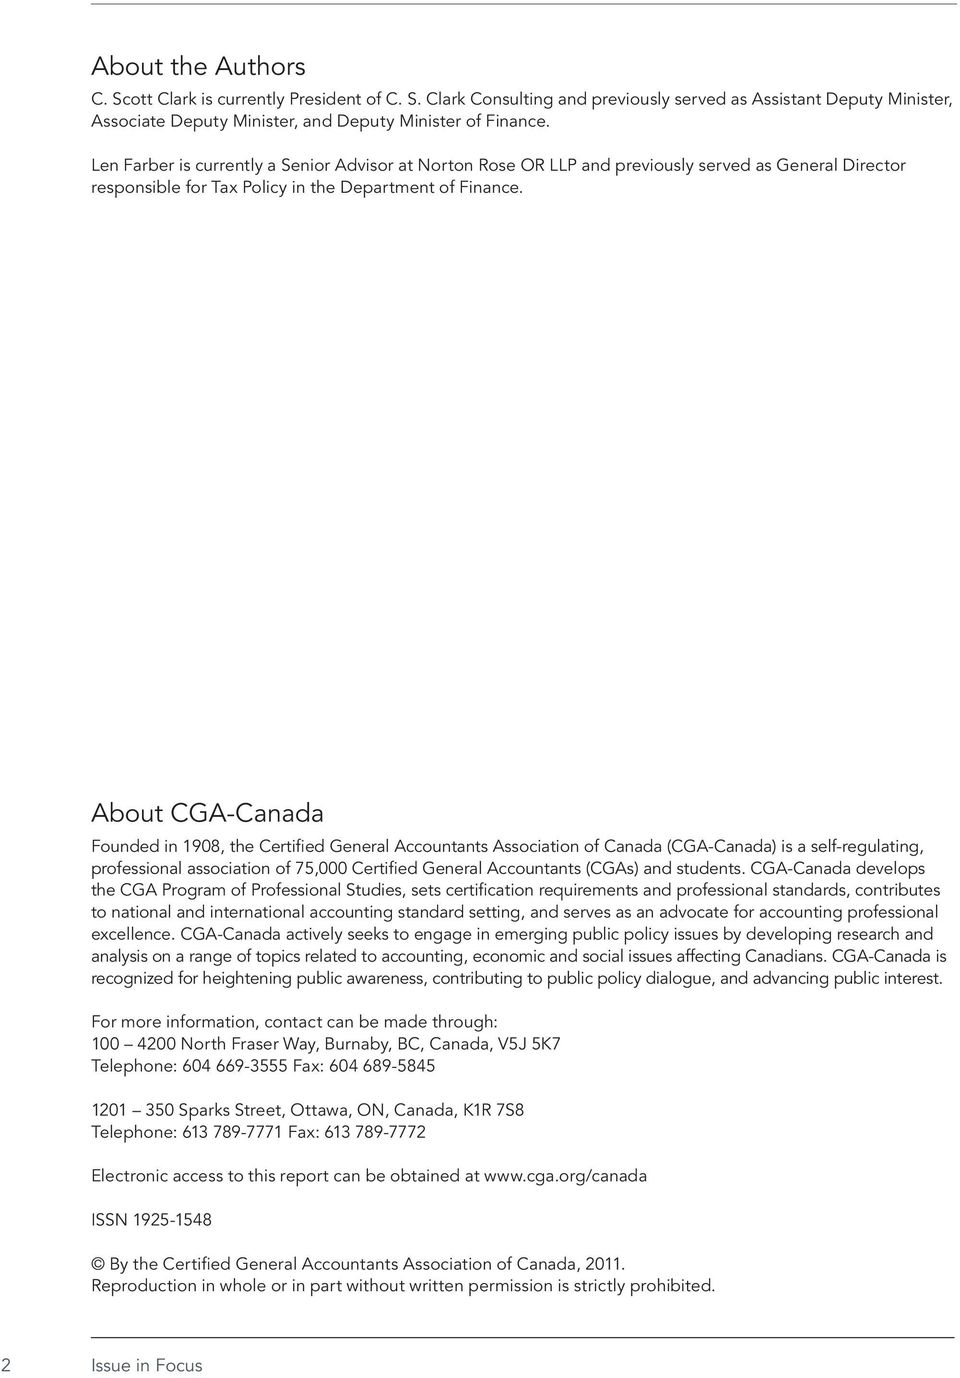 About CGA-Canada Founded in 1908, the Certified General Accountants Association of Canada (CGA-Canada) is a self-regulating, professional association of 75,000 Certified General Accountants (CGAs)